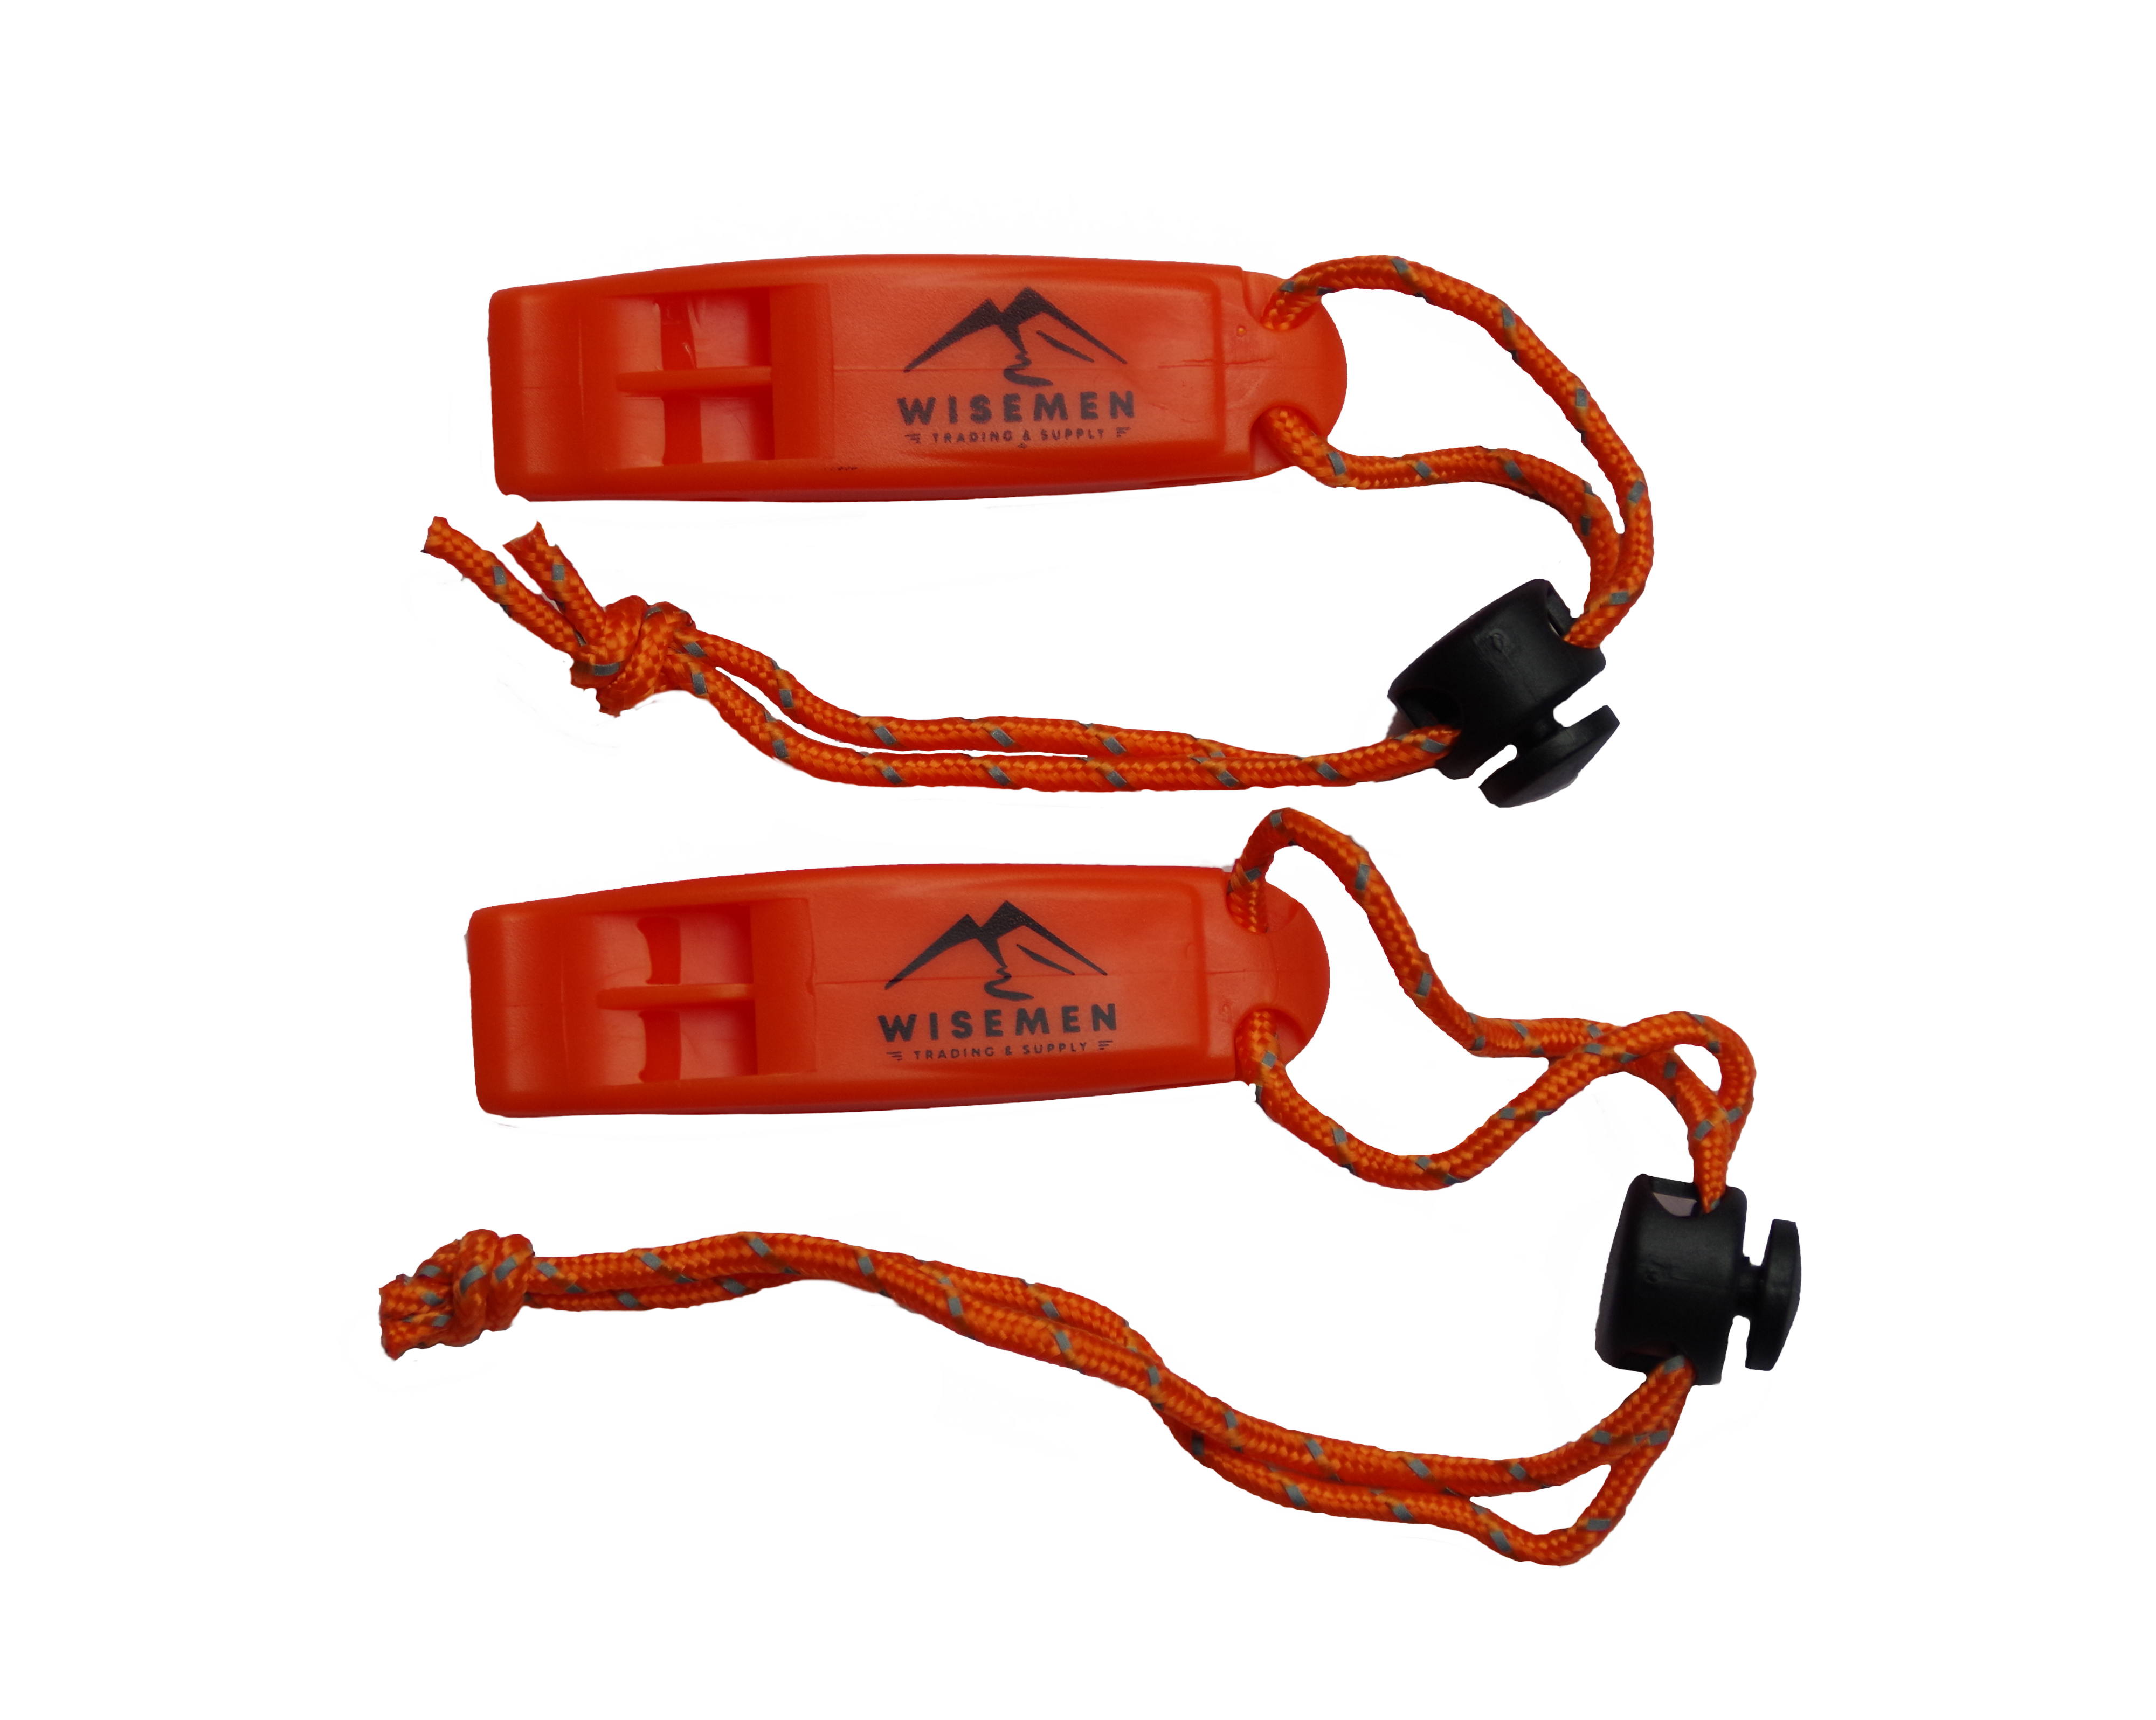 Hiking Hunting Boating Fishing Boat 2 Pack Wisemen Trading Whistles with Lanyard Survival for Kayak Life Vest Jacket Rescue Signaling Camping